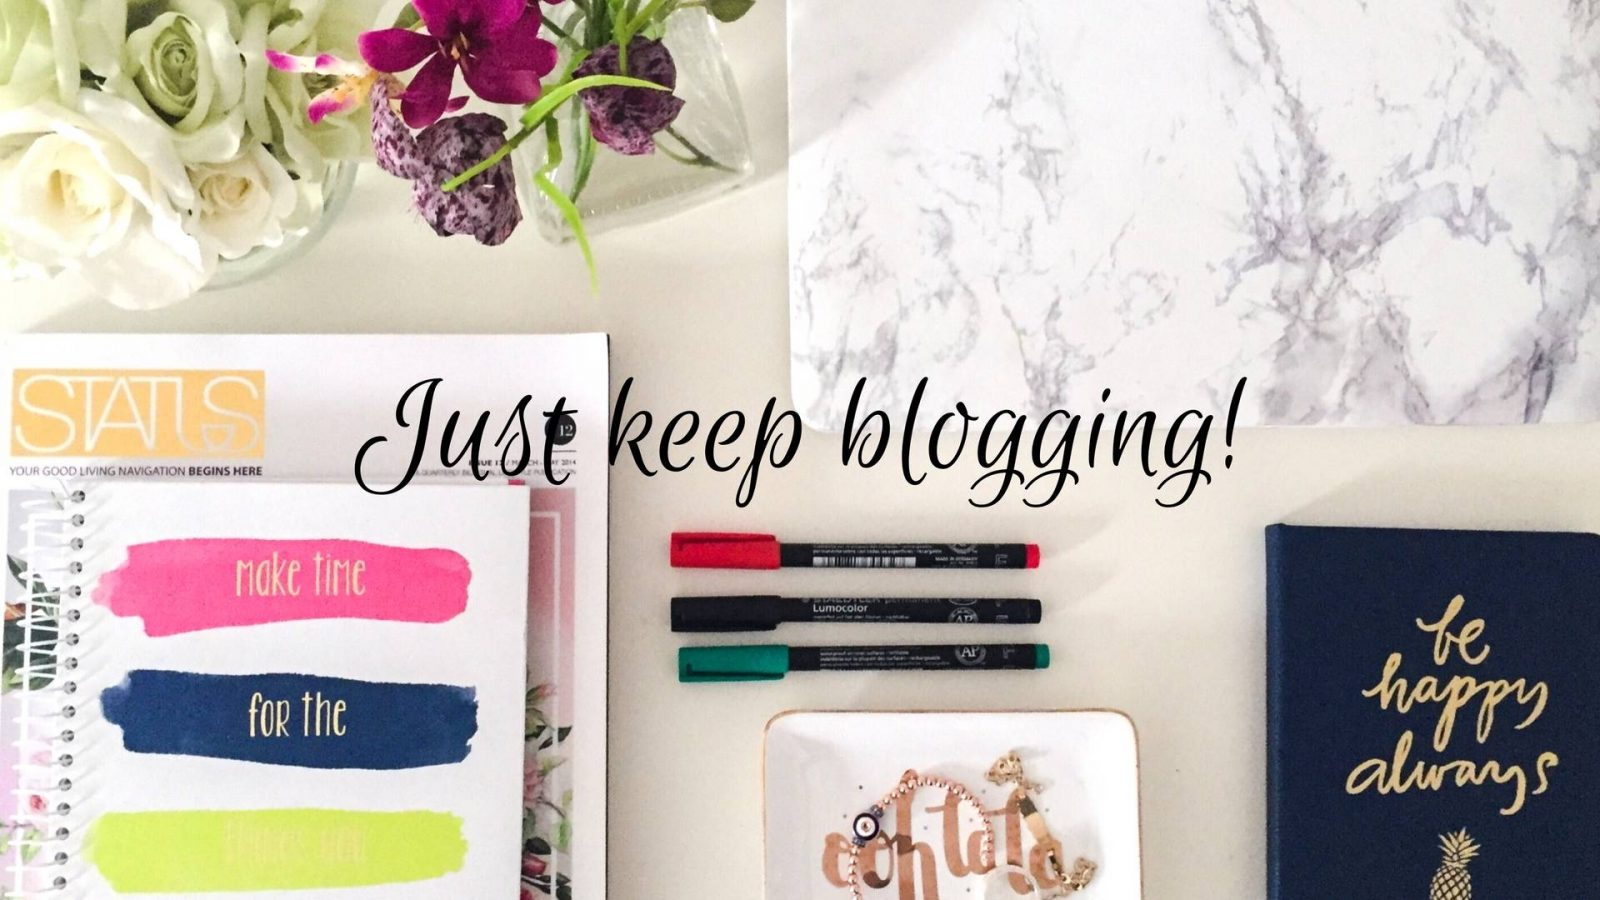 Just keep blogging, just keep blogging…